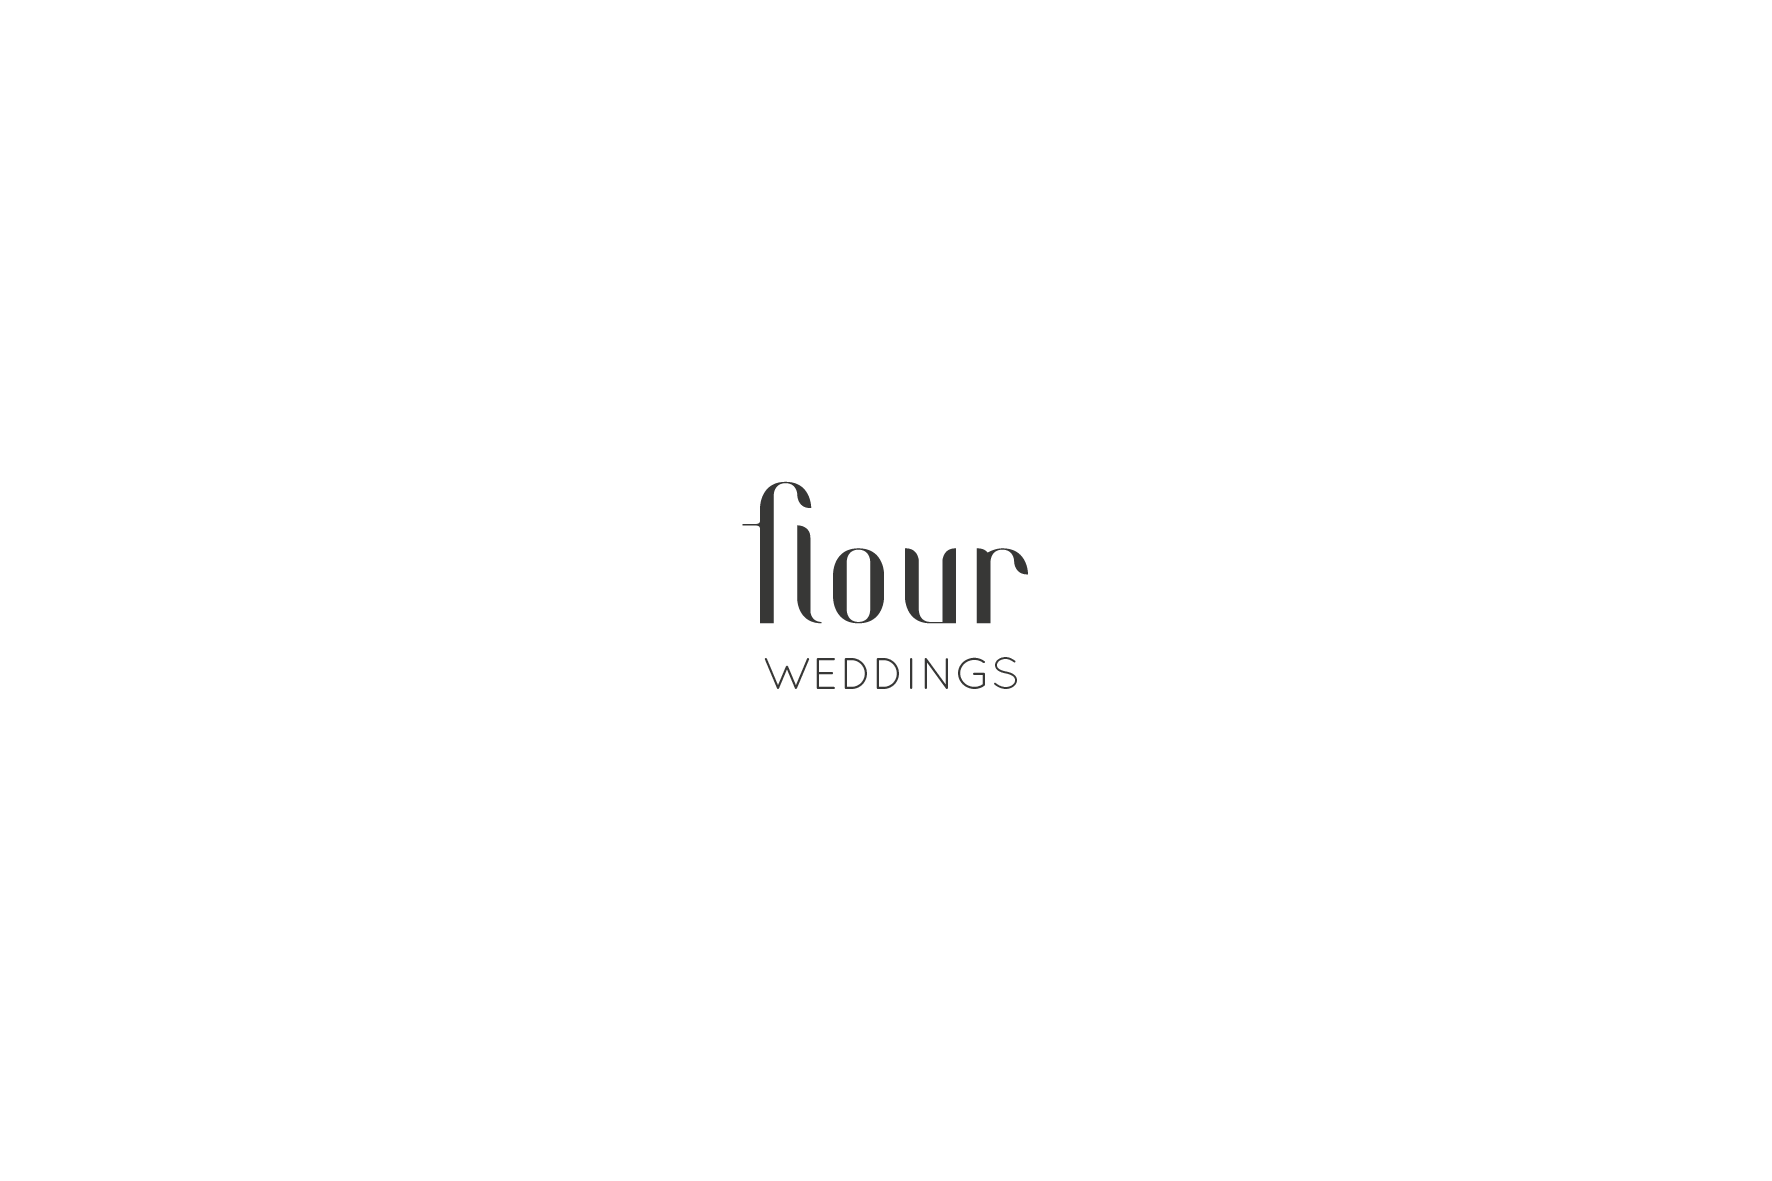 Flour weddings